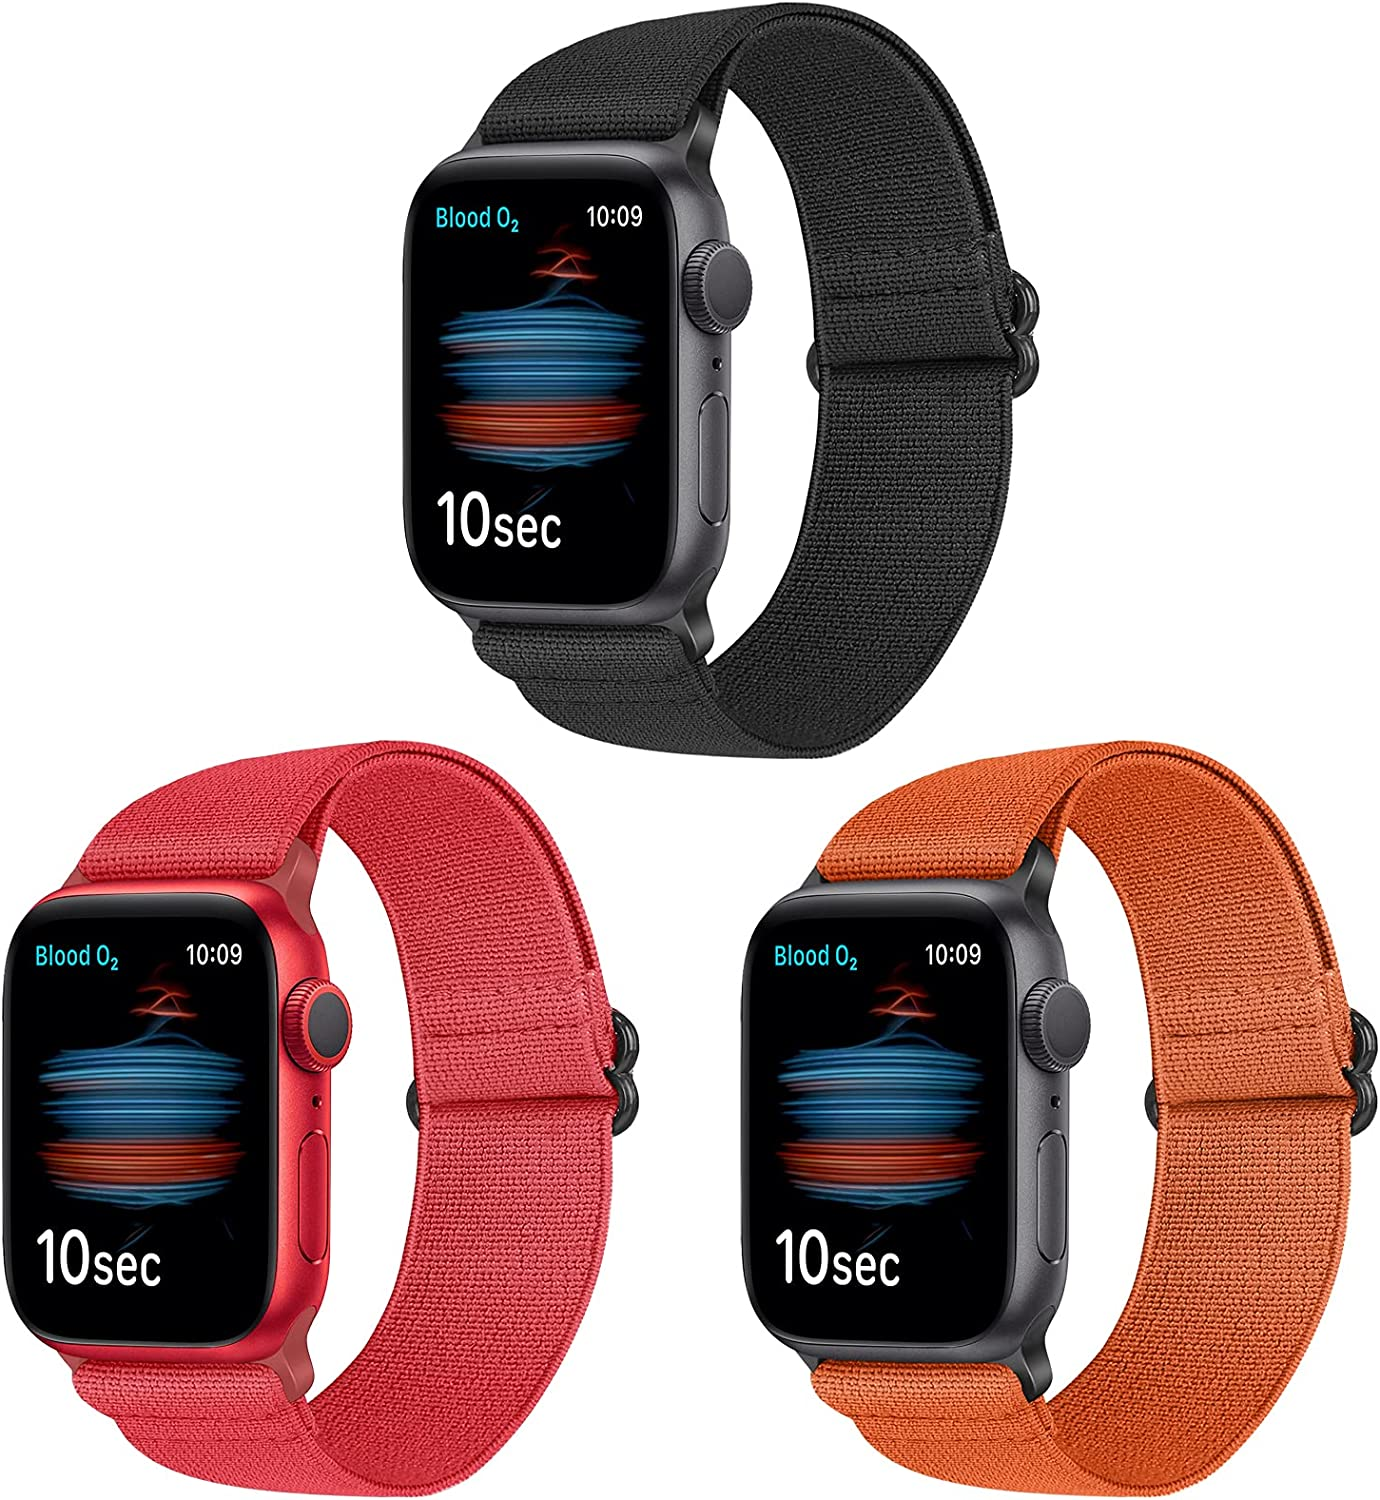 WNIPH Elastic Nylon Solo Loop Bands Compatible With Apple Watch 44mm 42mm 40mm 38mm, Adjustable Stretchy Sport Replacement Wristband Compatible for iWatch Series 6/5/4/3/2/1/SE Women Men